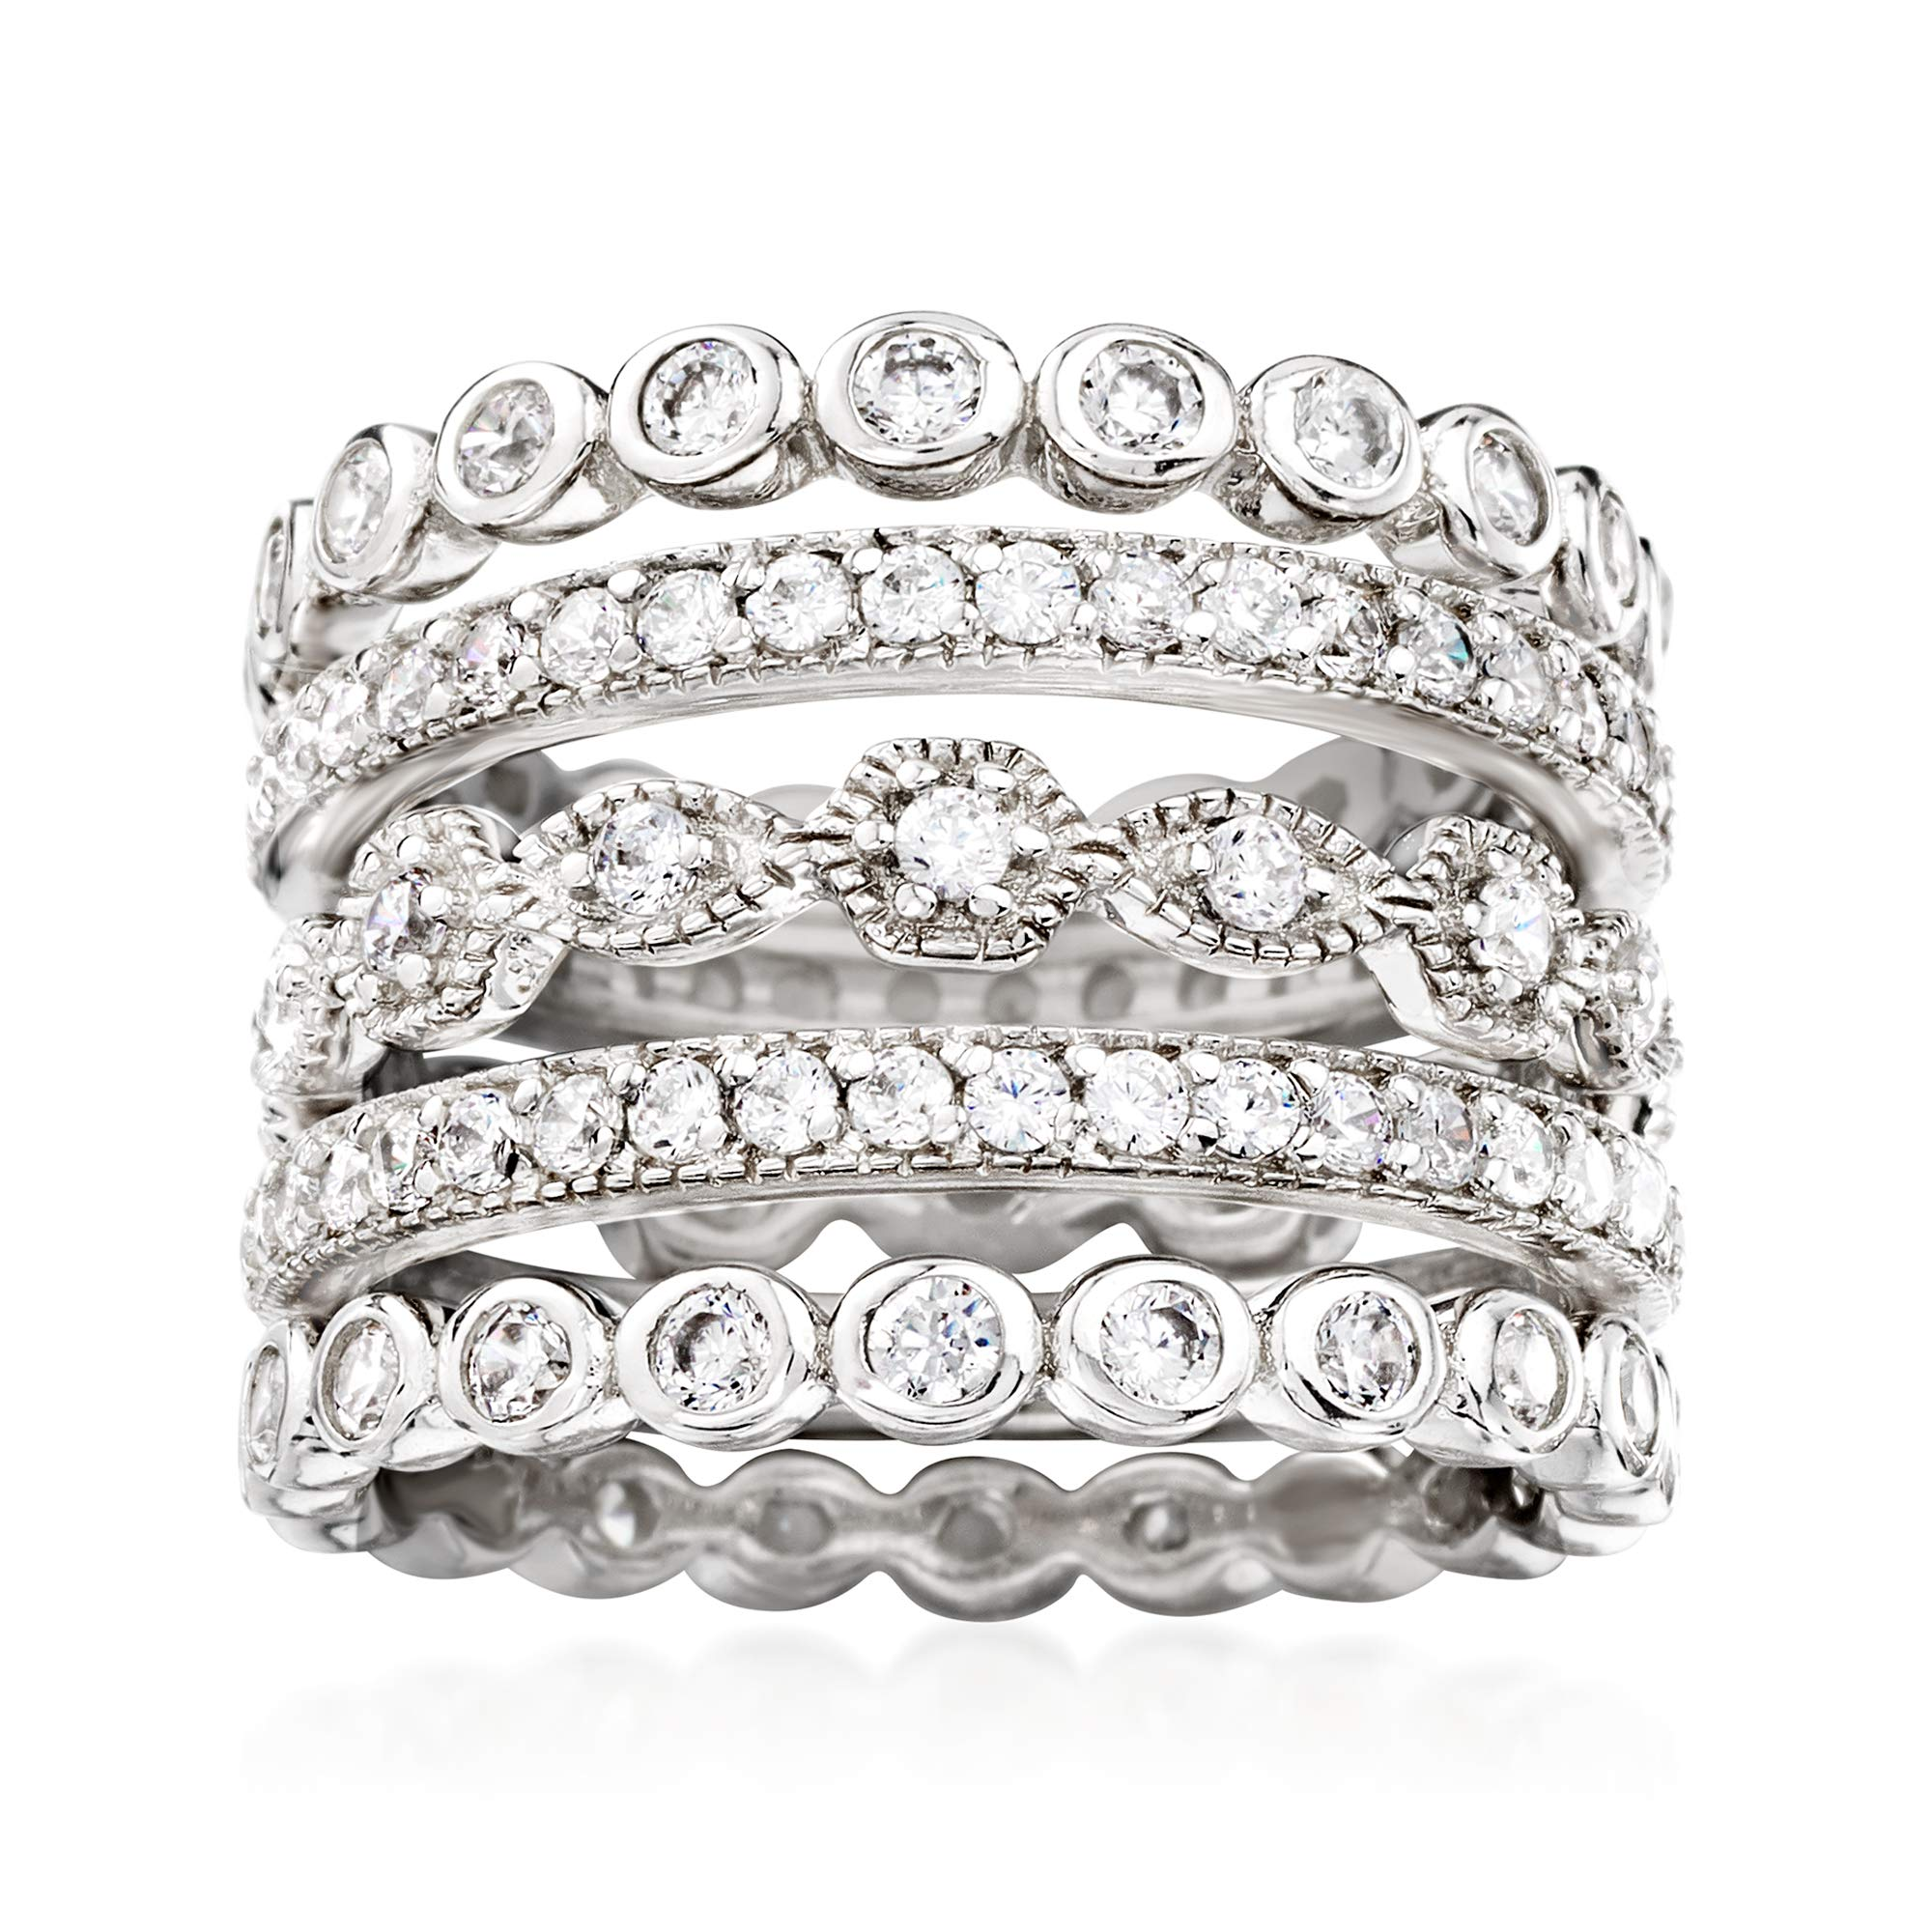 Ross-Simons 2.50 ct. t.w. CZ Jewelry Set: 5 Eternity Bands in Sterling Silver by Ross-Simons